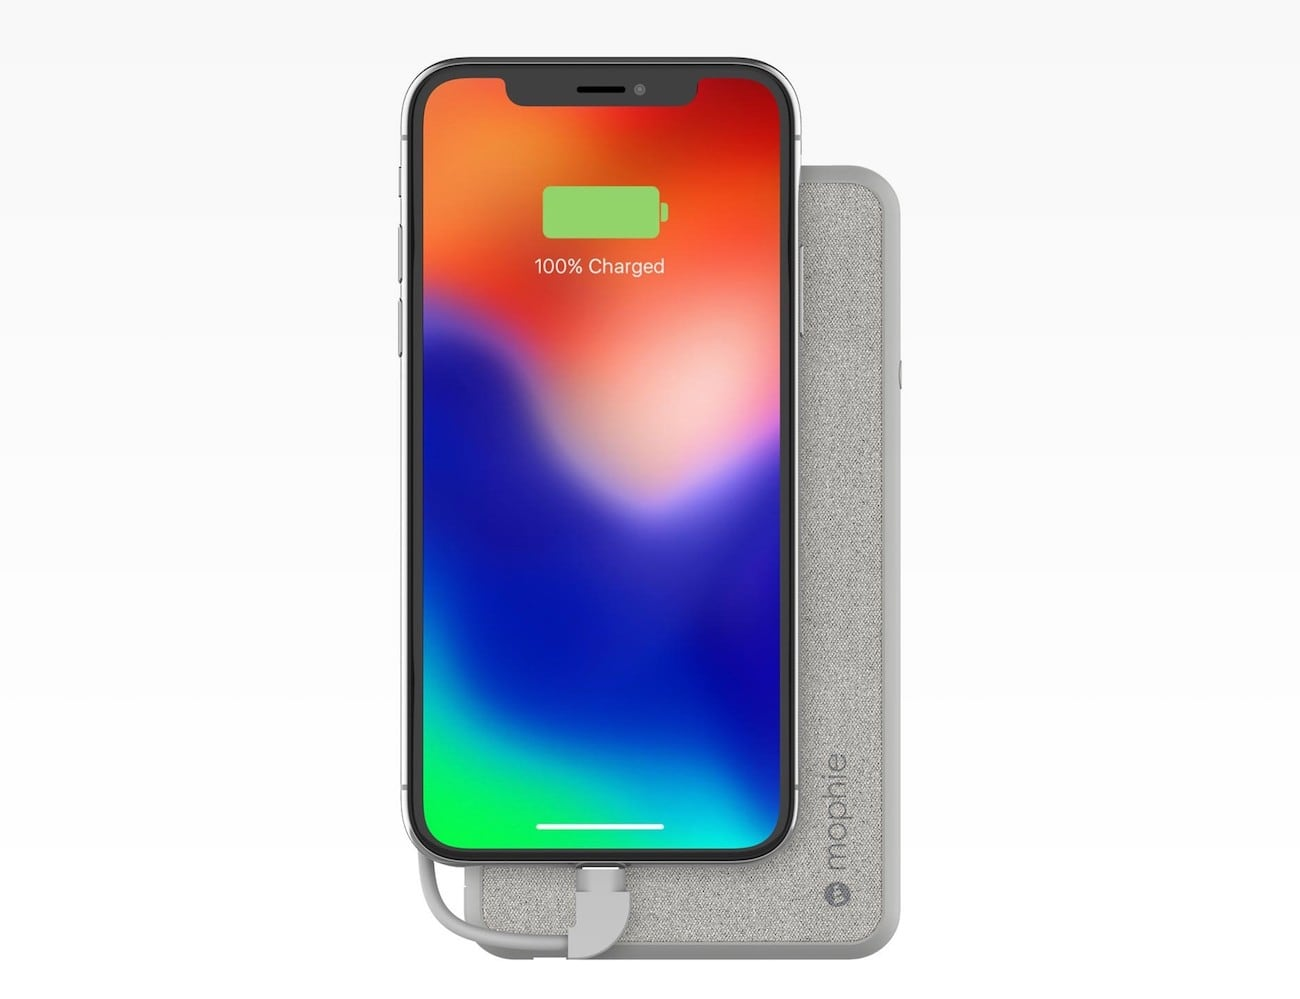 online retailer 02939 c0e87 mophie powerstation plus XL with Lightning connector Apple Power Bank  provides 10,000 mAh of battery power